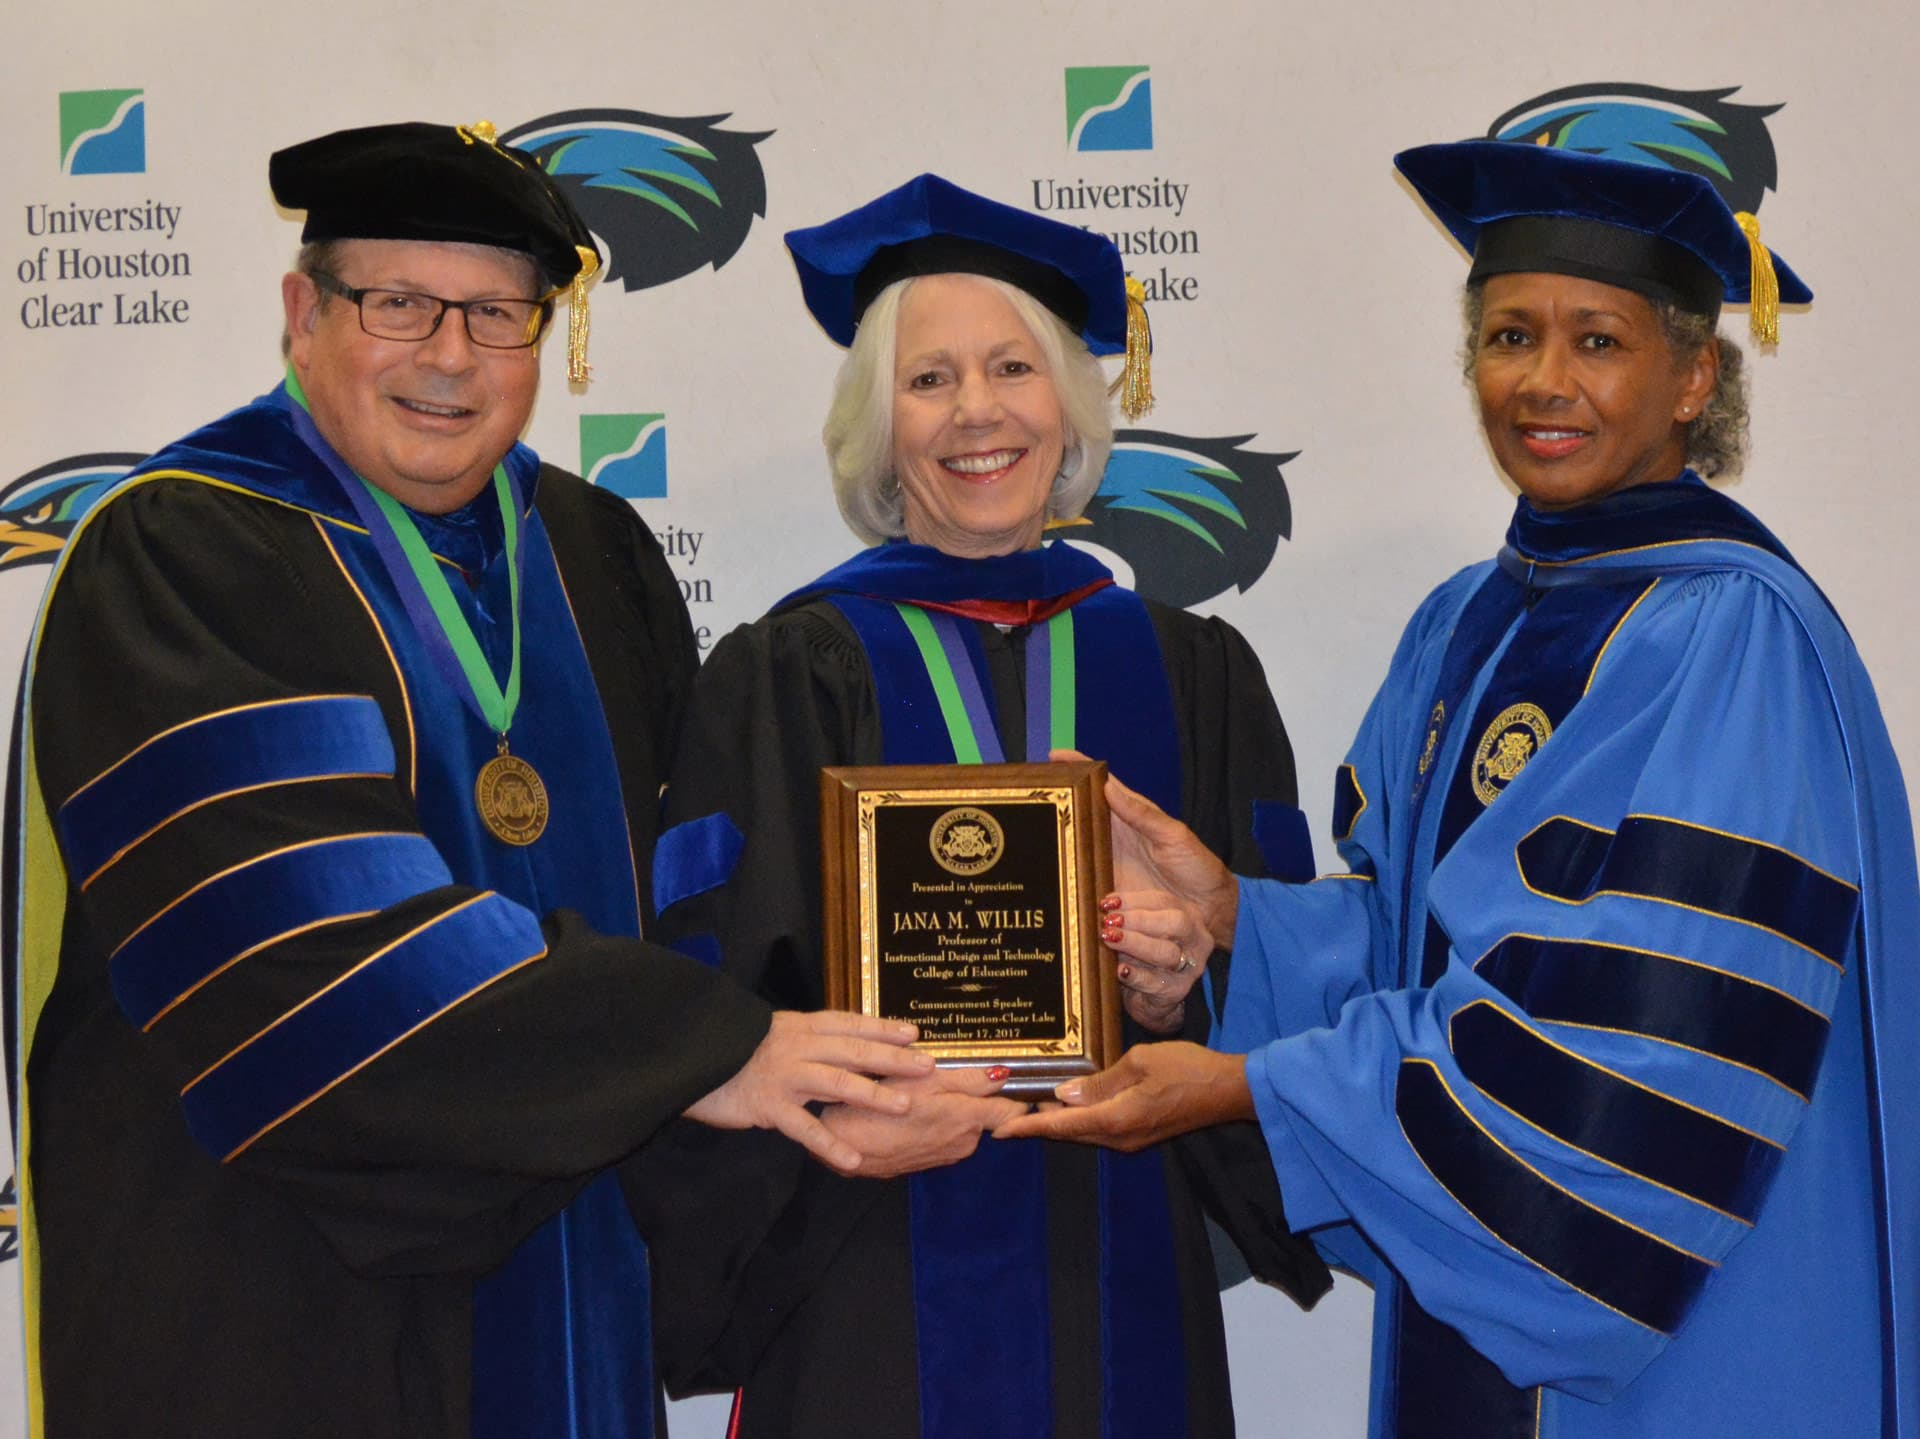 UHCL's Willis tells grads: 'Dream big and enjoy the detours'